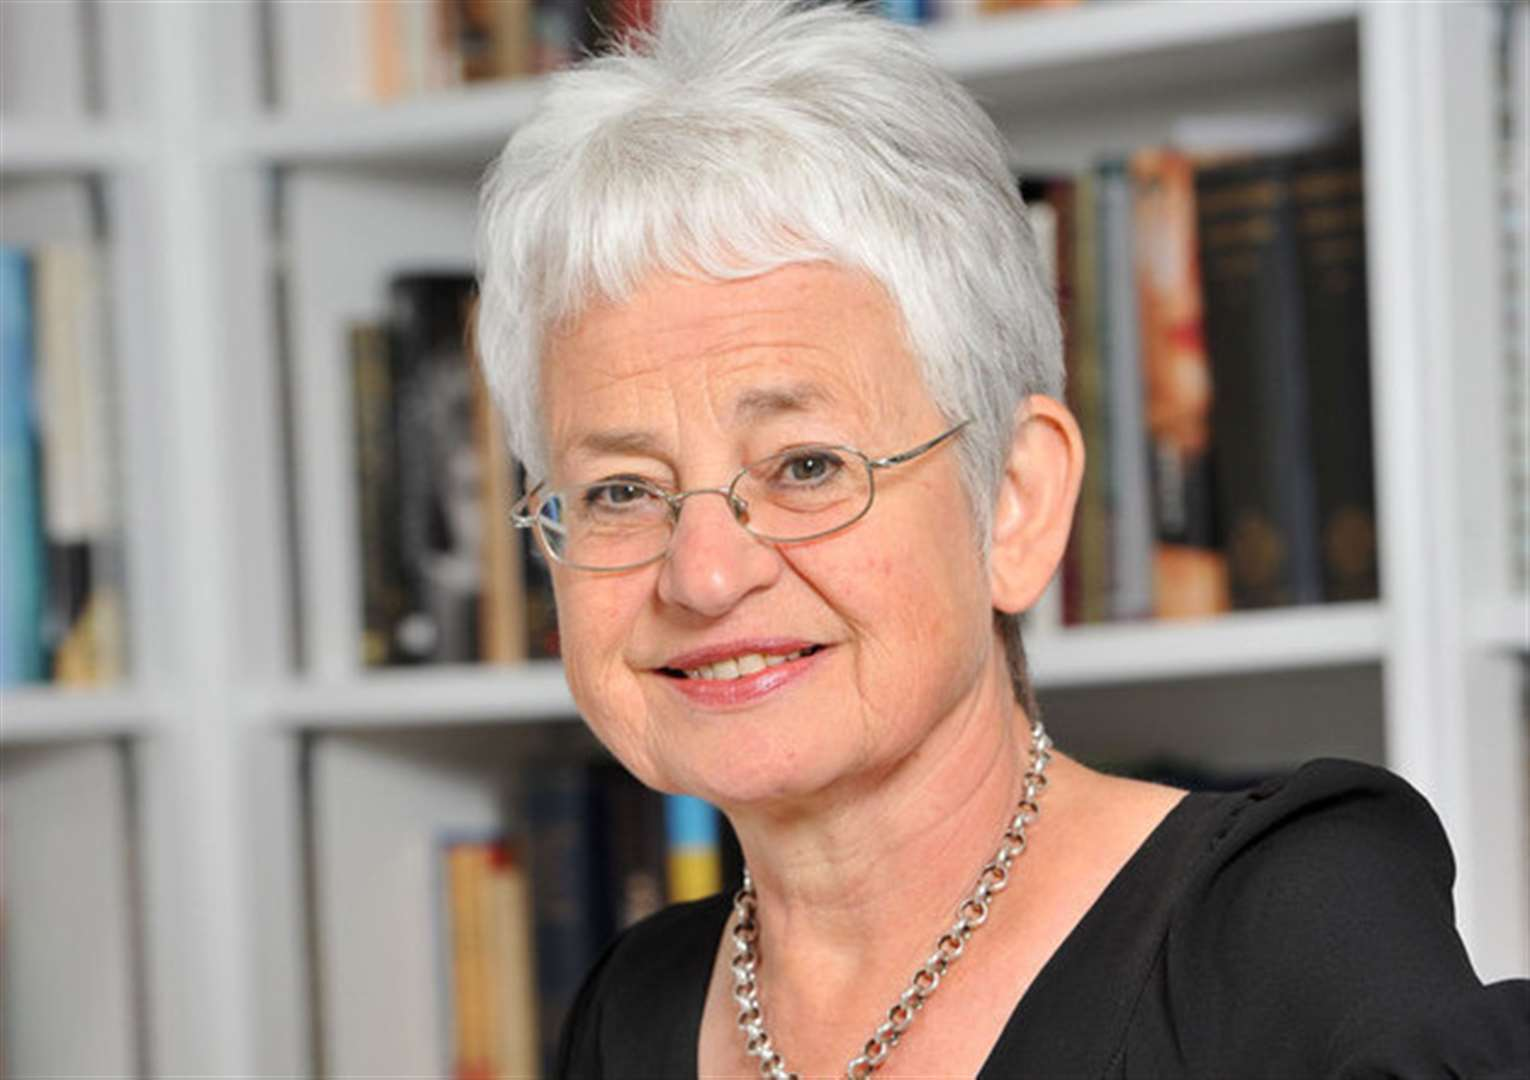 Tracy Beaker author Dame Jacqueline Wilson to make appearance at Grantham school